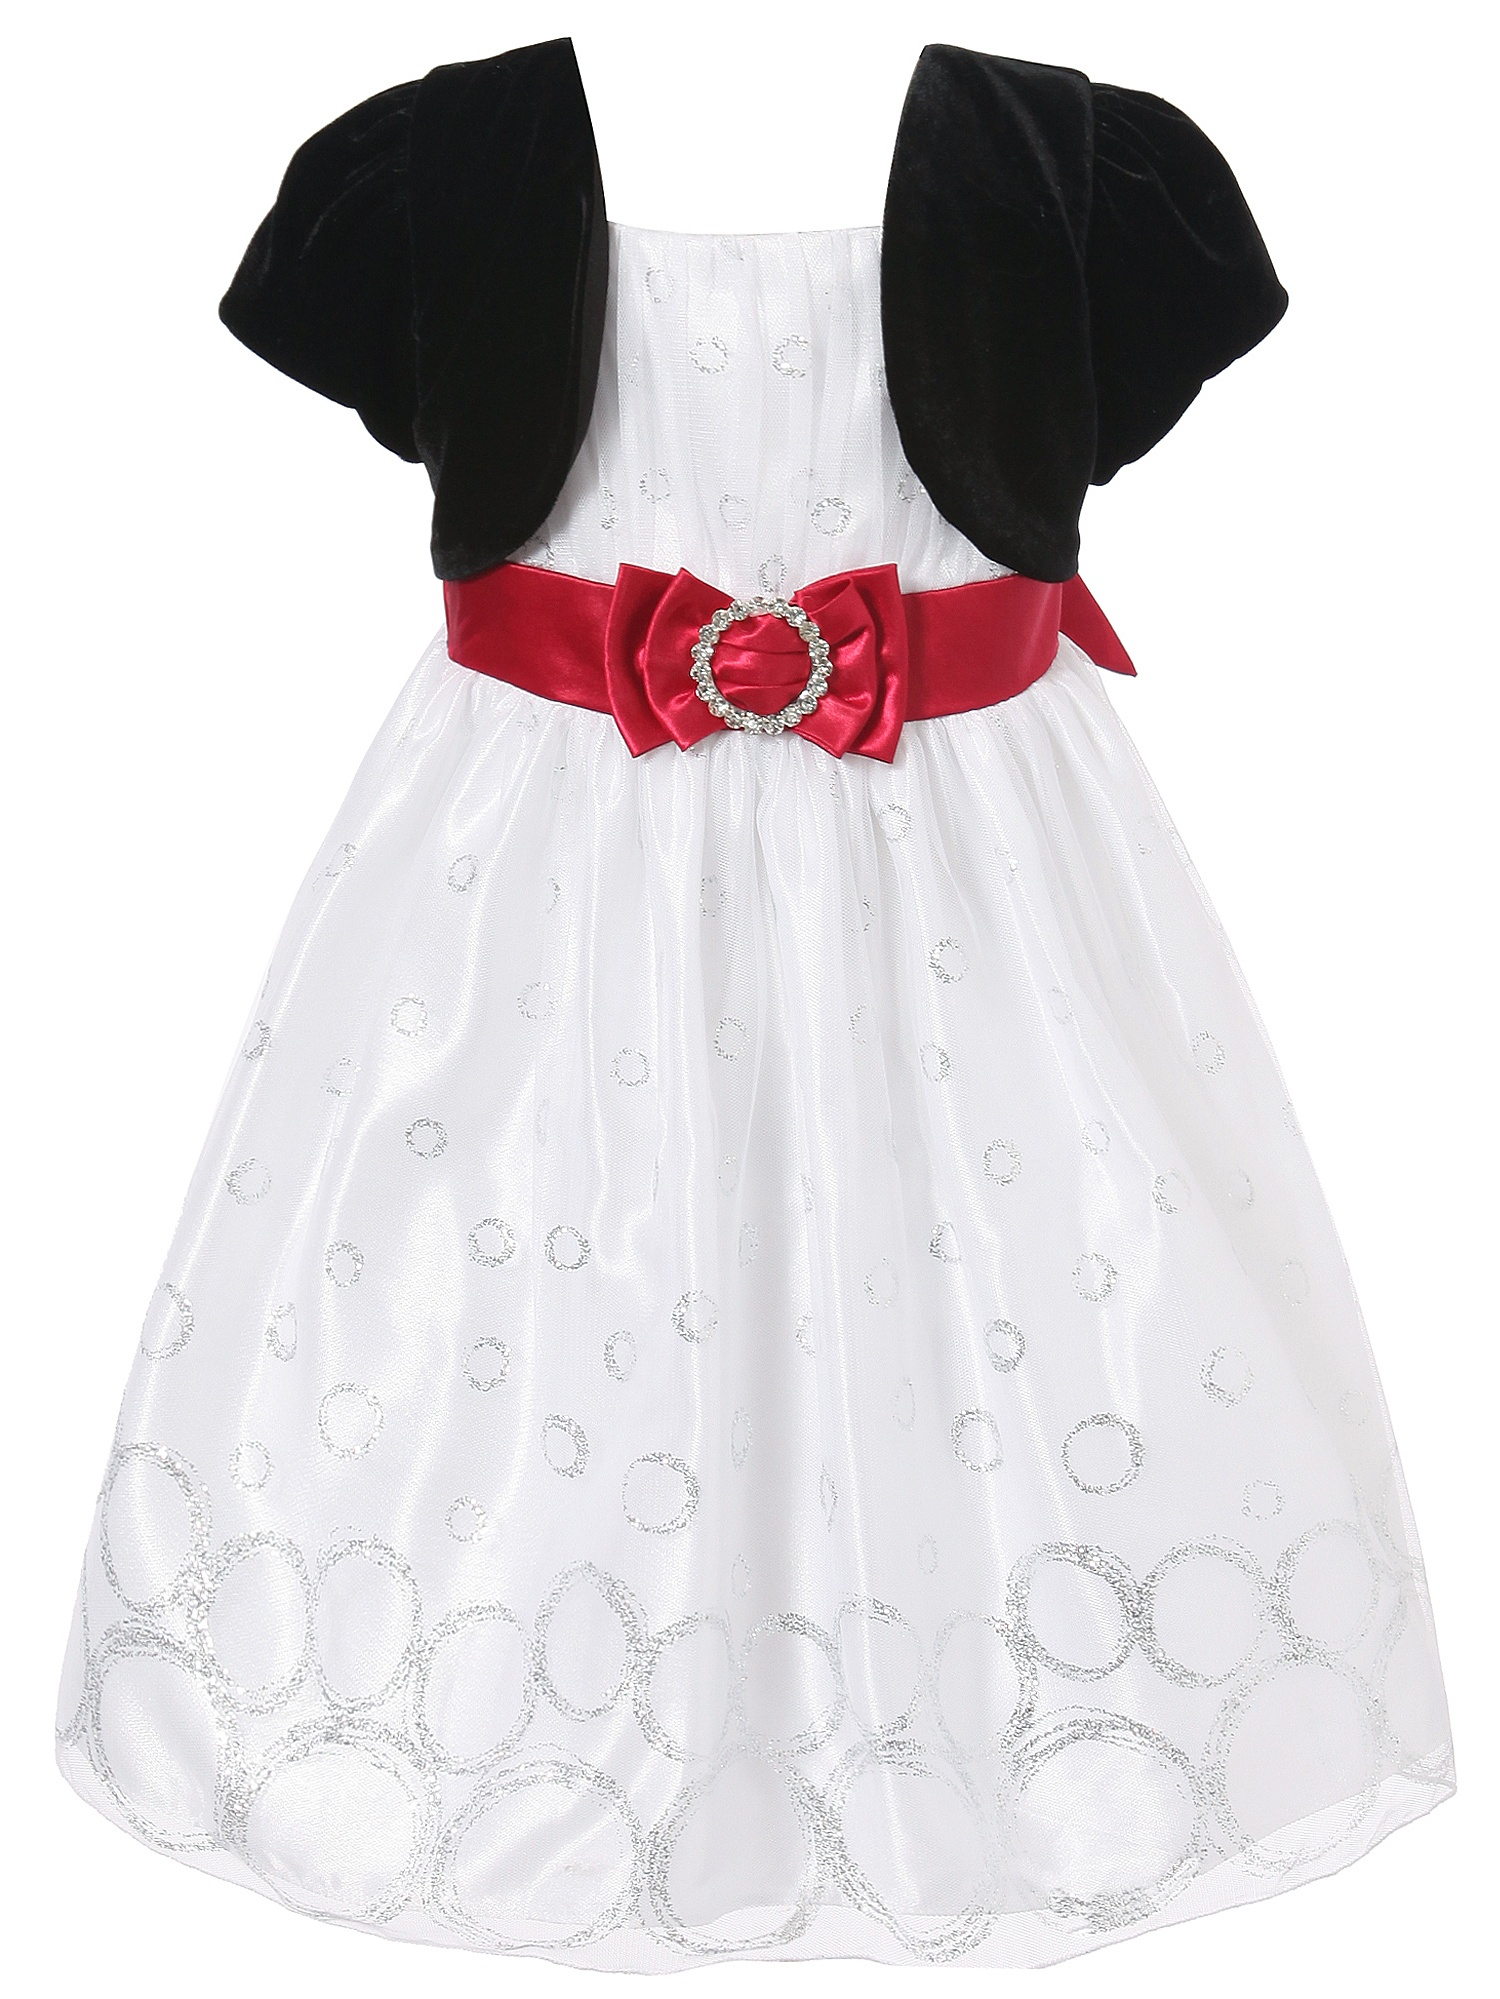 Richie House Girls' Party Dress with Black Cape RH1369